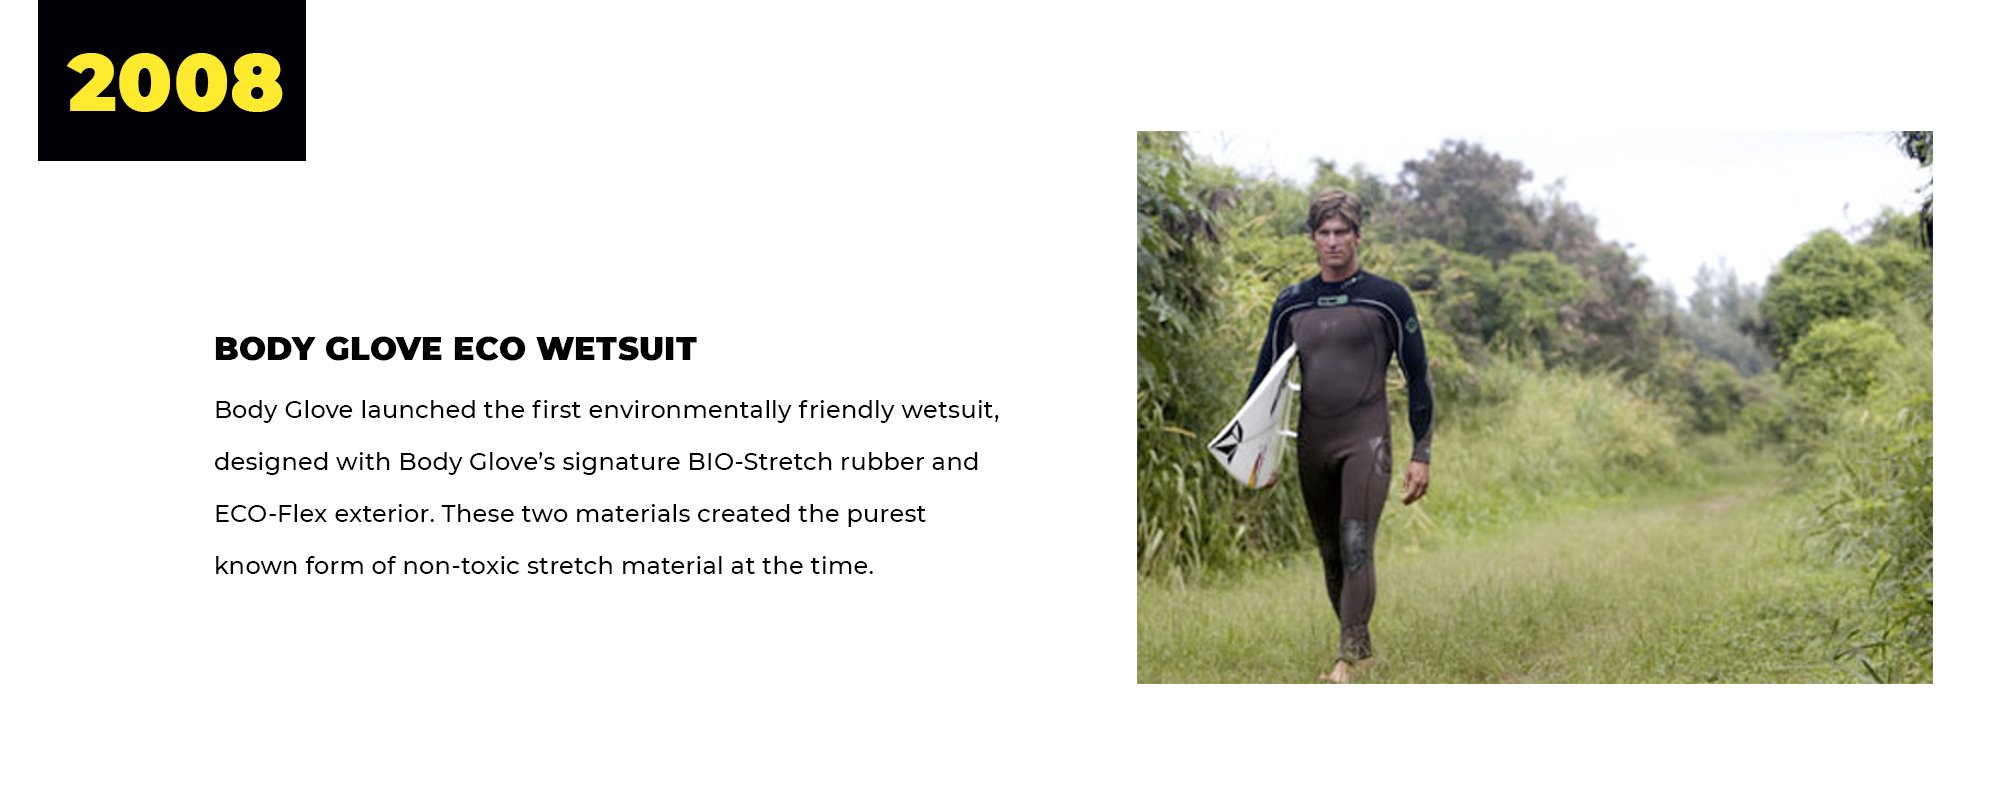 2008 | Body Glove Eco Wetsuit | Body Glove launched the first environmentally friendly wetsuit, designed with Body Glove's signature BIO-Stretch rubber and ECO-Flex exterior. These two materials created the purest known form of non-toxic stretch material at the time.